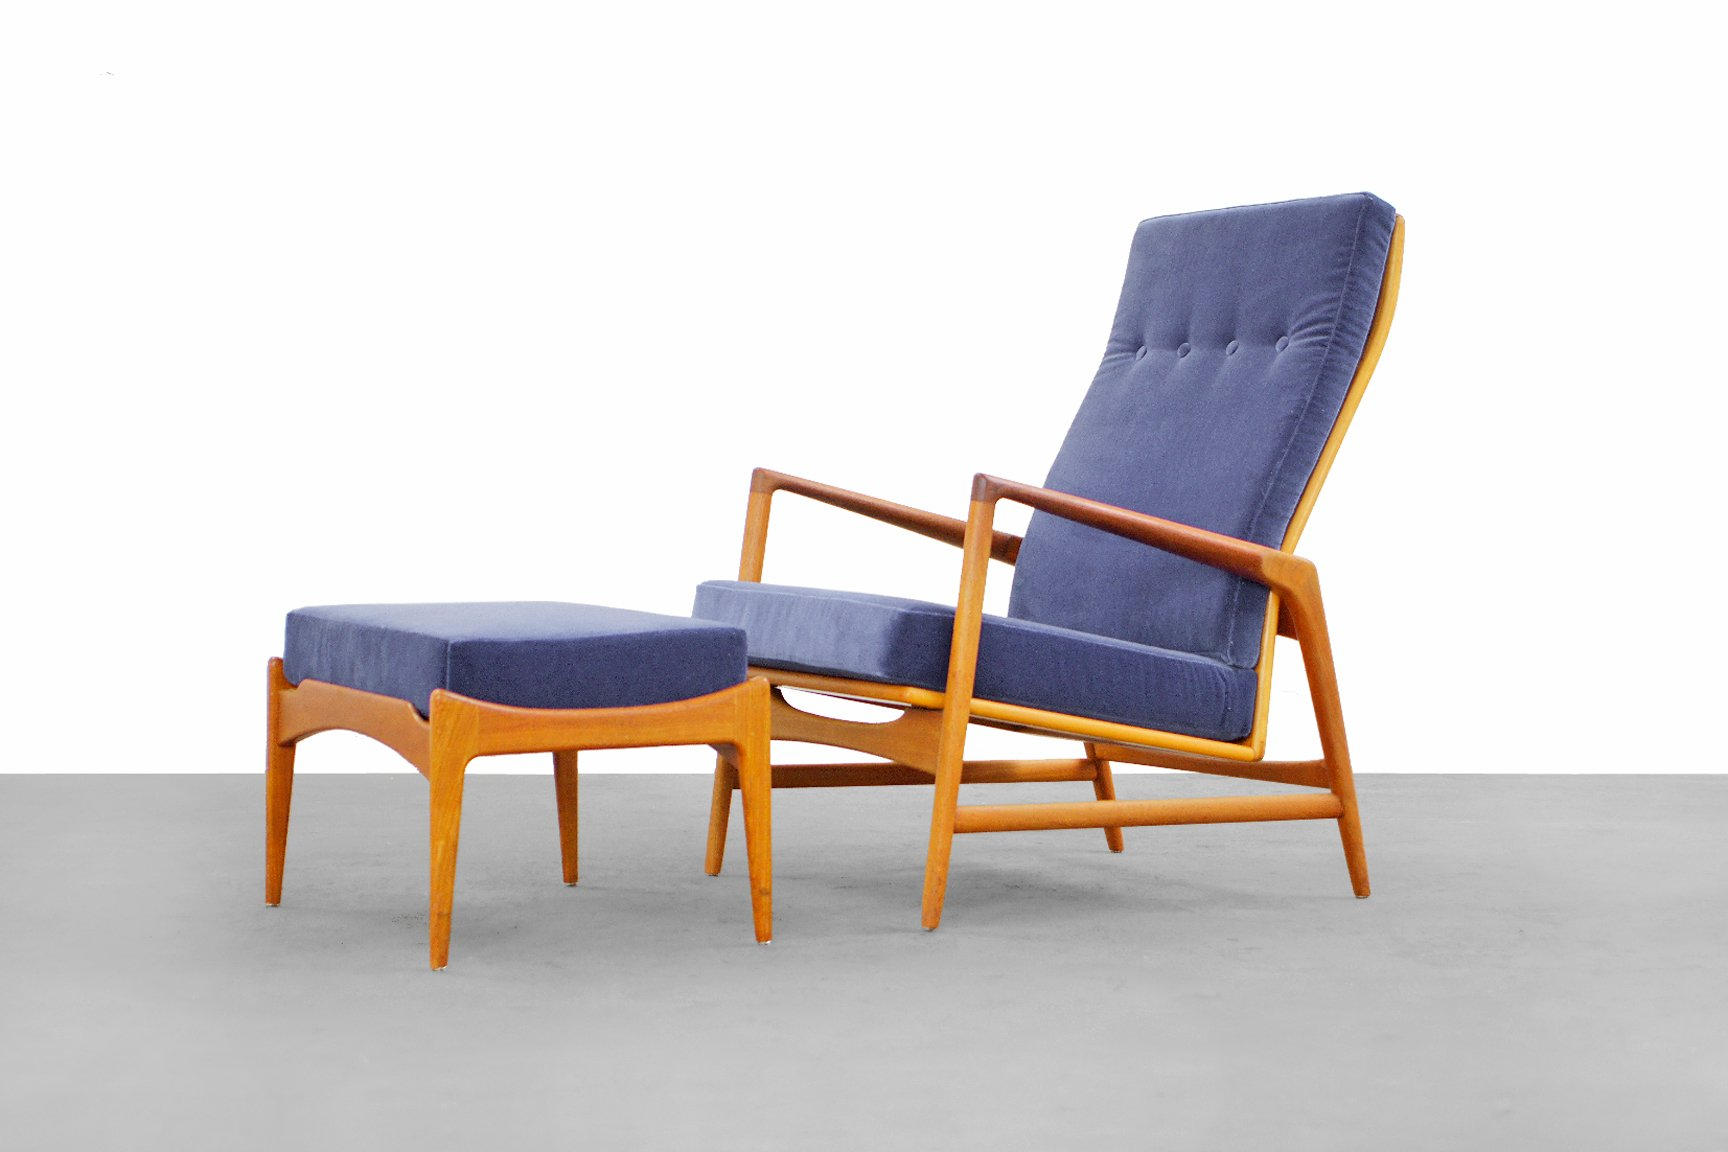 This sculptural pair of lounge chairs by ib kofod larsen is no longer - Danish Modern Lounge Chair Ottoman By Ib Kofod Larsen For Selig